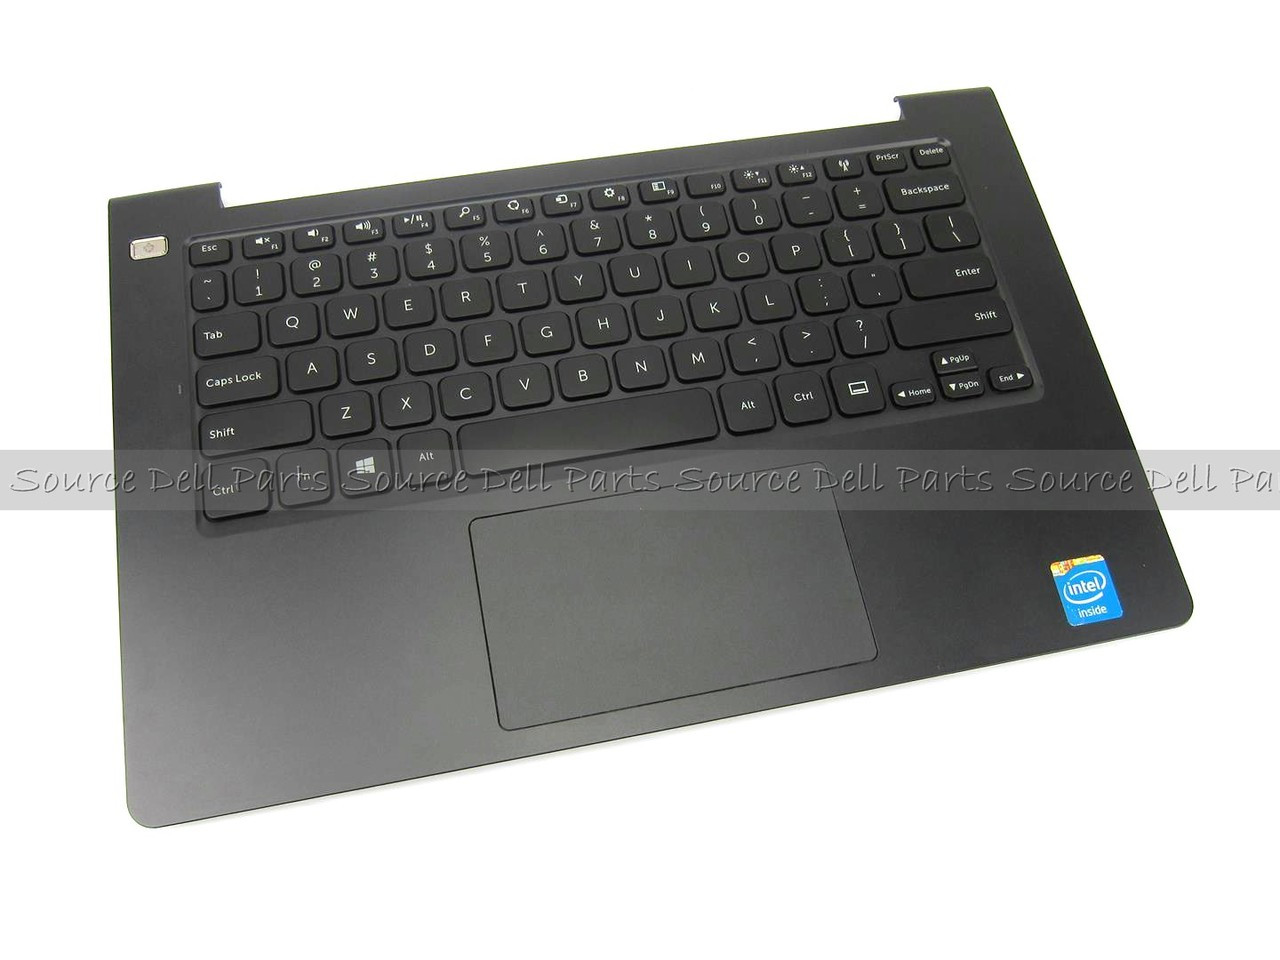 Dell Inspiron 11 (3137) Palmrest Touchpad W/ Keyboard - 8M5HH